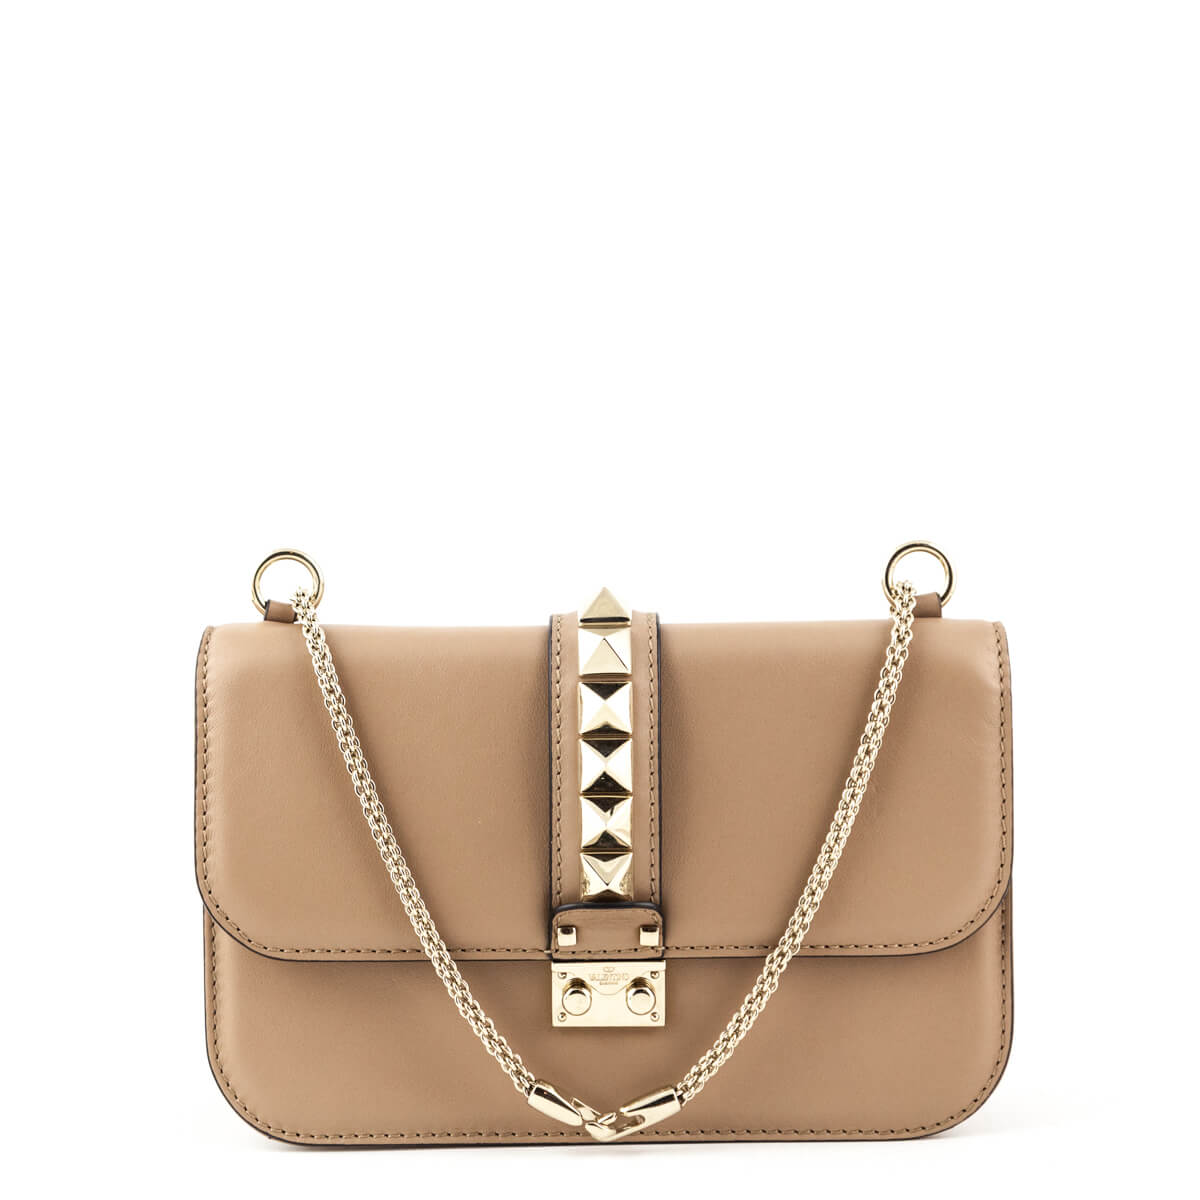 bf0e6b32afe1b3 Valentino Beige Calfskin Medium Glamlock Chain Bag - LOVE that BAG -  Preowned Authentic Designer Handbags ...